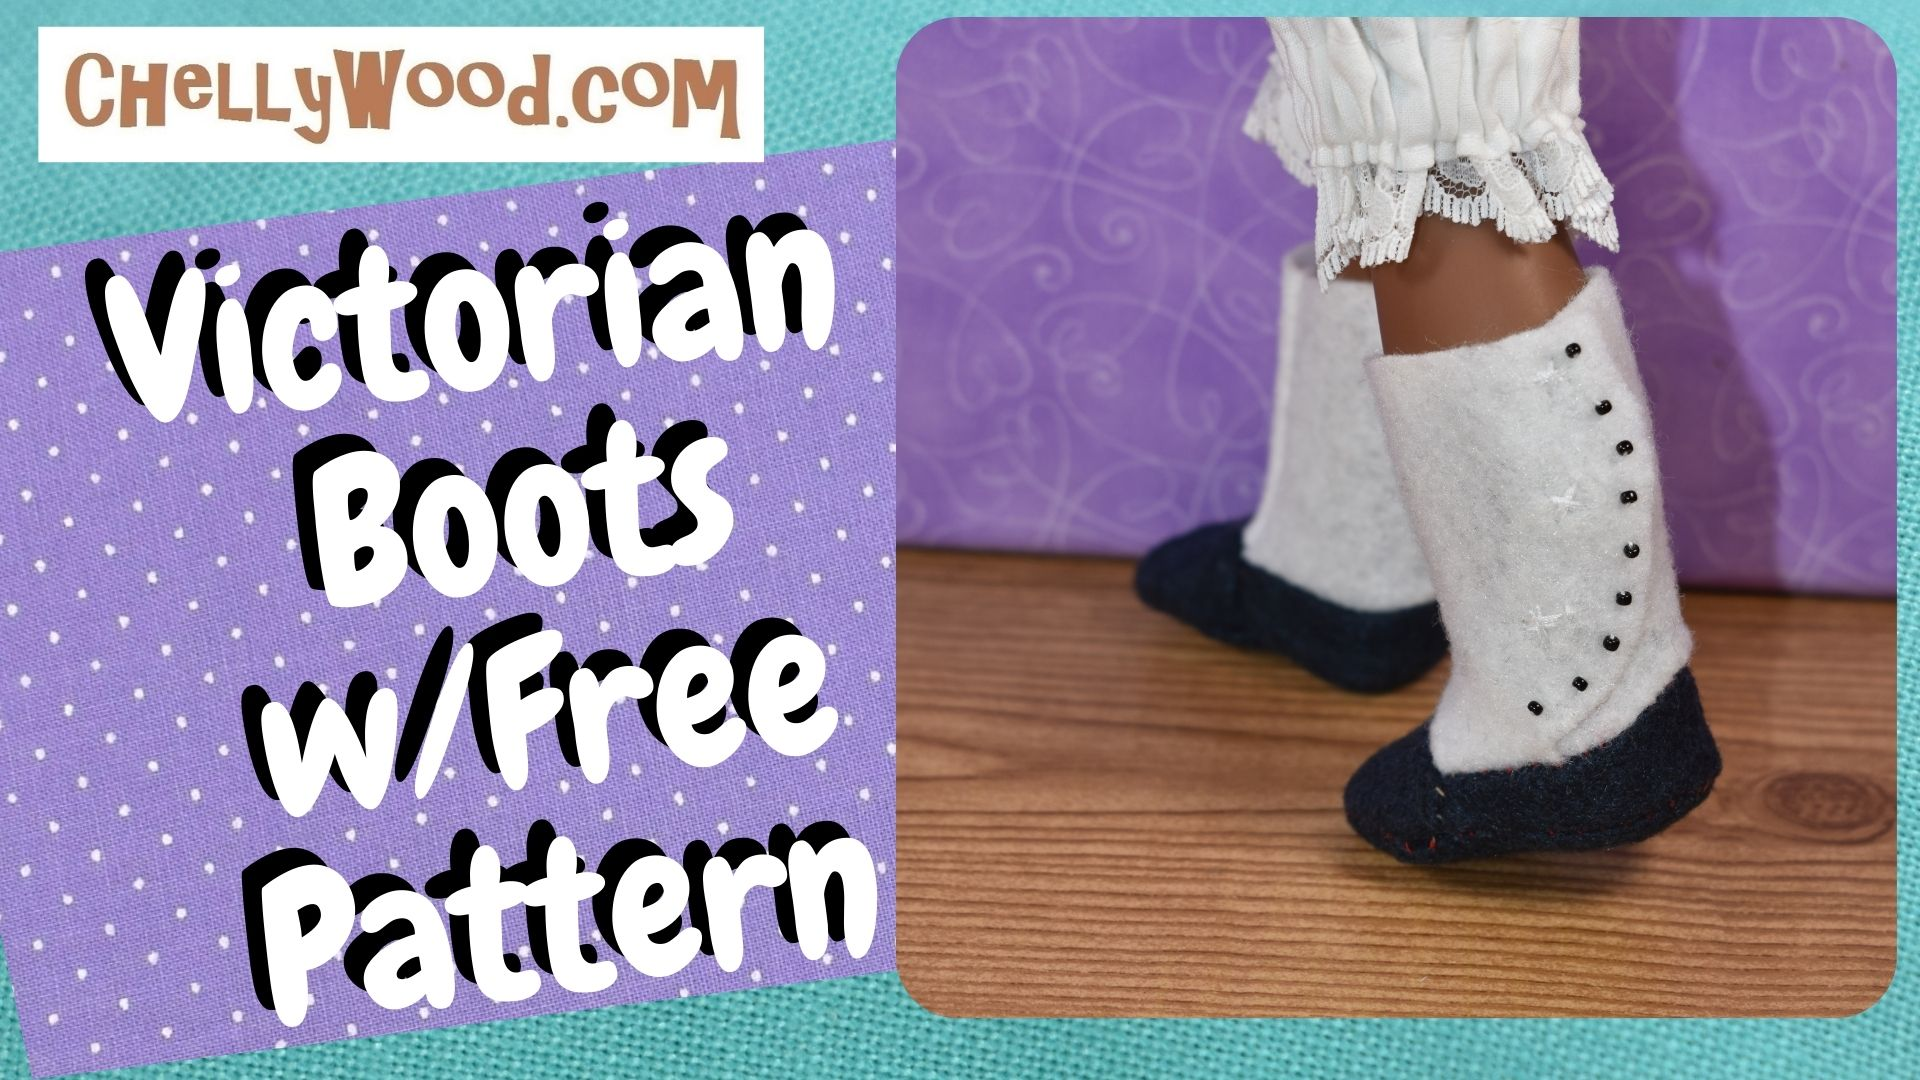 """The image shows a 15 inch doll's feet modeling a pair of Victorian style boots made of felt. We can also see the lace edges of a pair of dolly bloomers that cover the doll's knee. The boots have white tops that look like Edwardian spats, but the lower part of the boot is navy blue. There are teeny-tiny black buttons along the curved edge of the boot's """"upper"""" area. The watermark reminds us to go to ChellyWood.com for free printable patterns and tutorials for making these adorable felt boots for dolls like Wellie Wishers, Hearts for Hearts Girls, and similar sized dolls."""